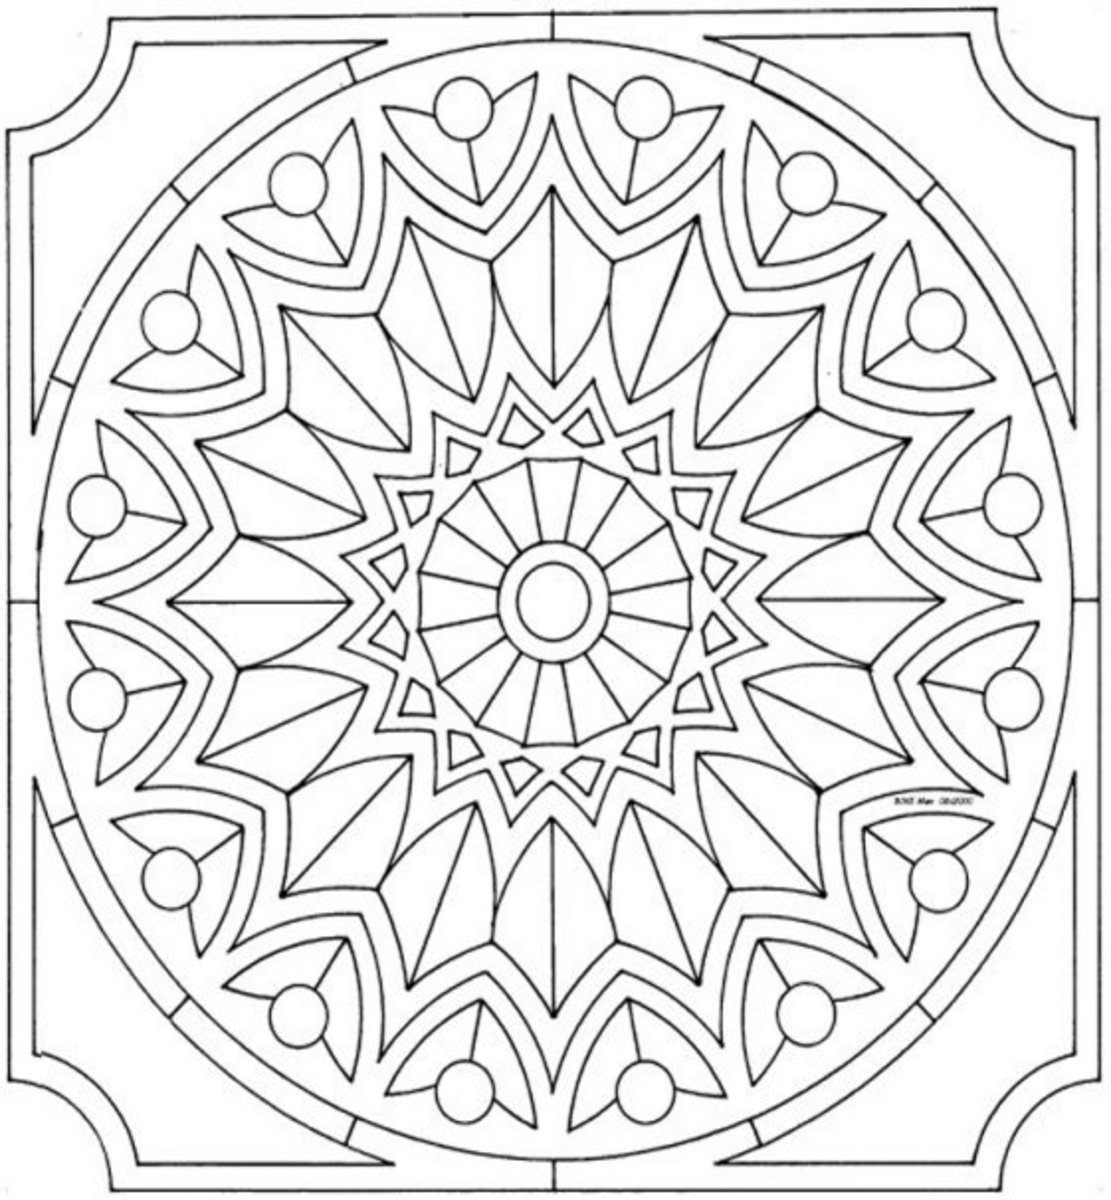 Mandala Pattern A2 - Colouring Pictures to print-and-color online.